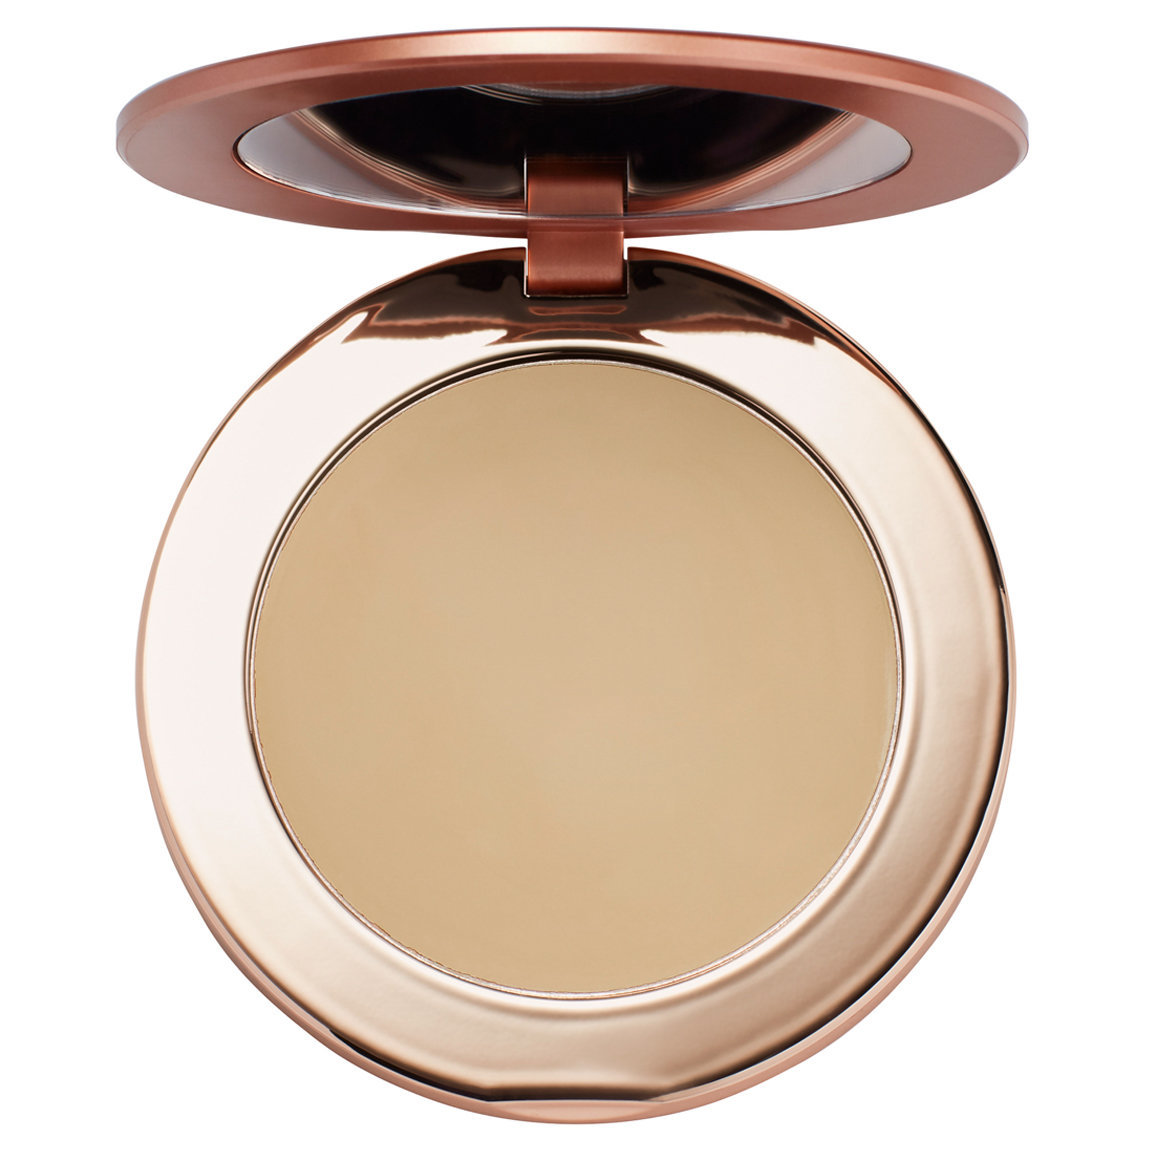 Stila Tinted Moisturizer Skin Balm Shade 1.0 alternative view 1.